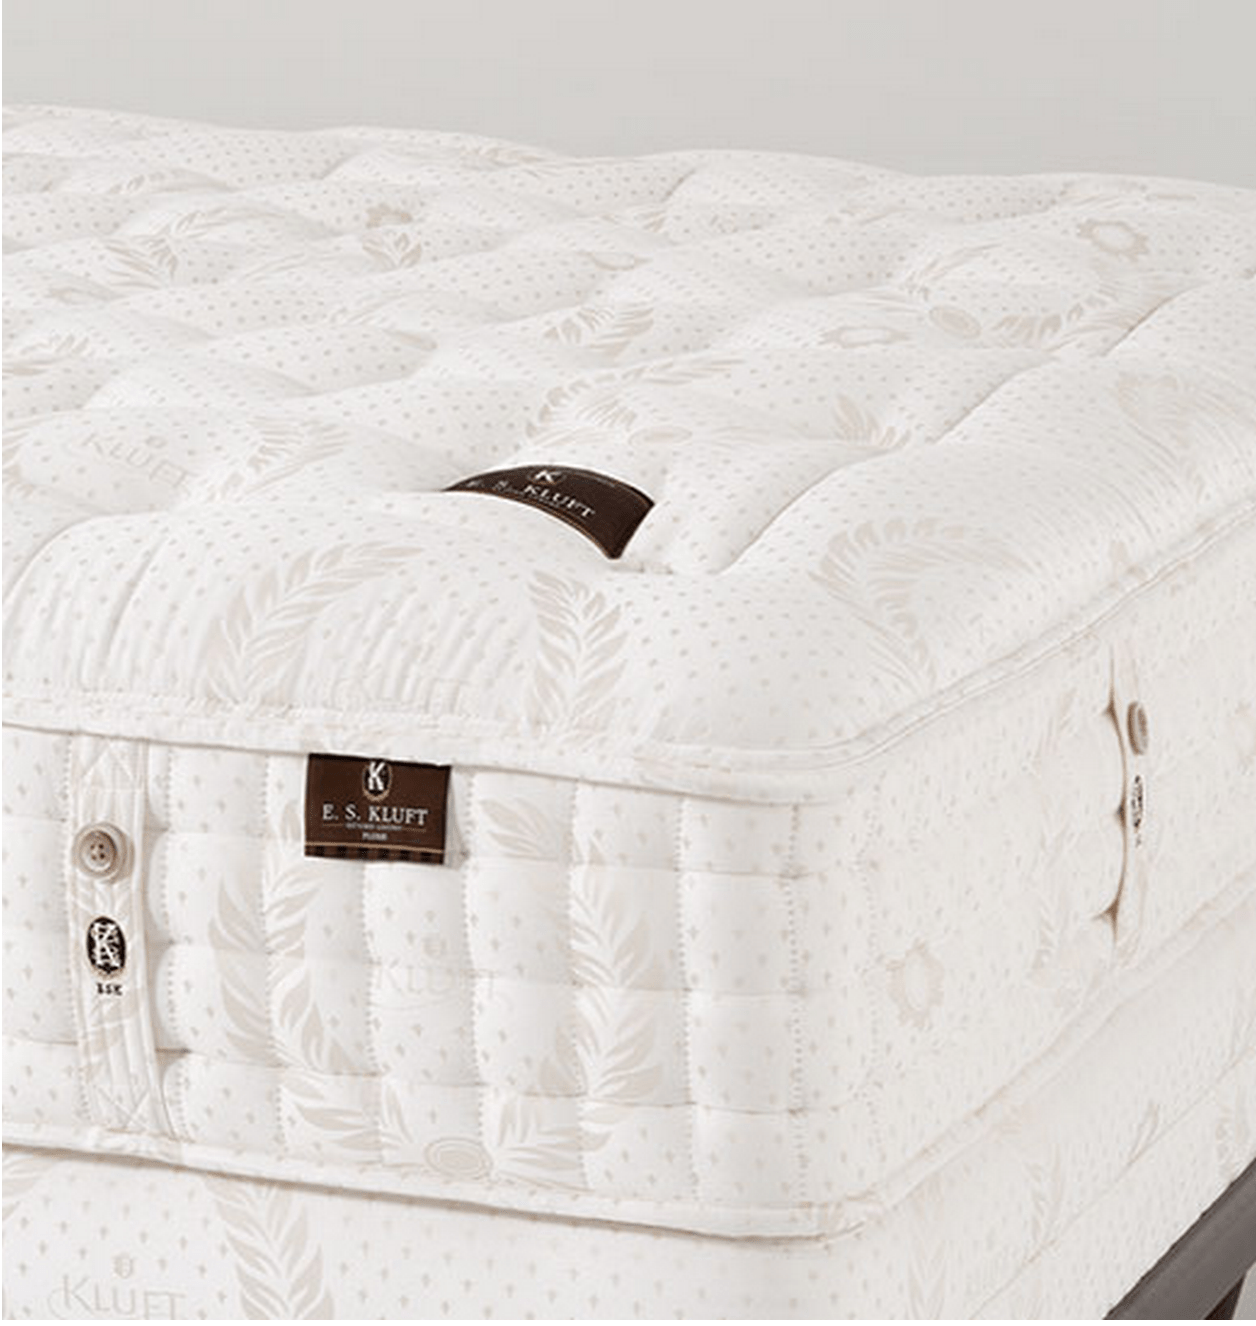 Kluft Mattress Reviews Goodbed Com